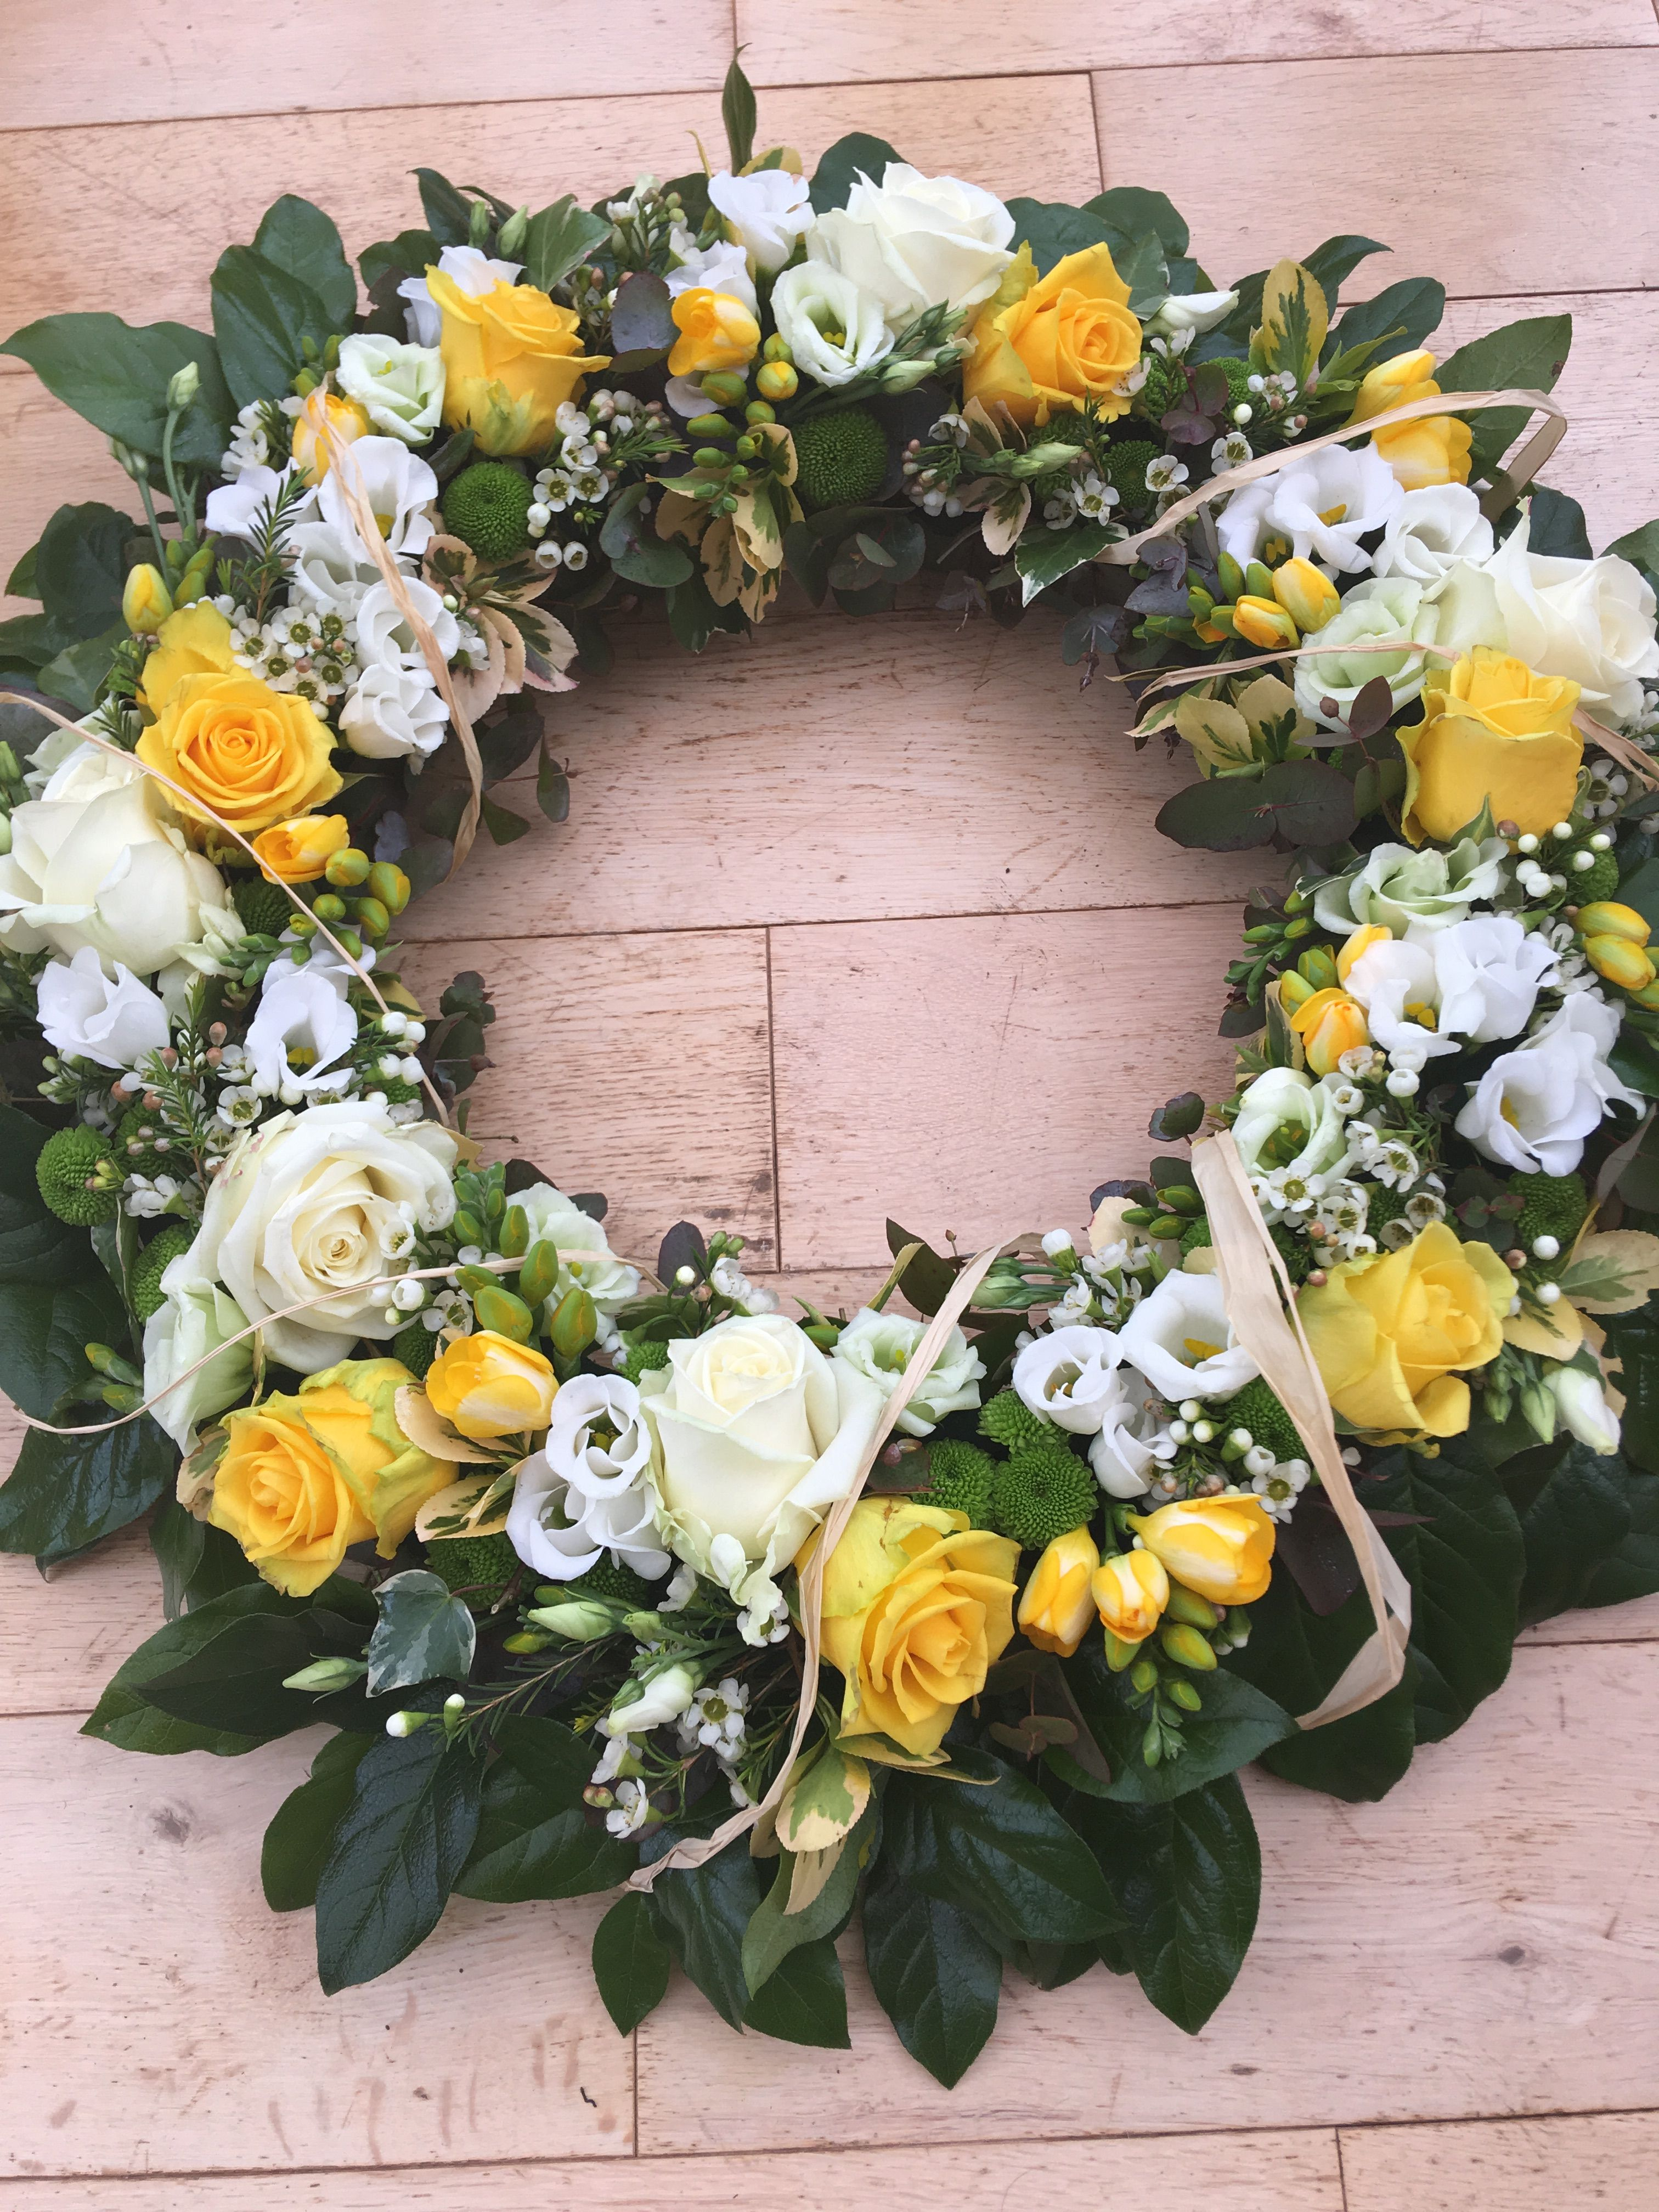 Yellow And White Sympathy Flowers Funeral Wreath Country Style